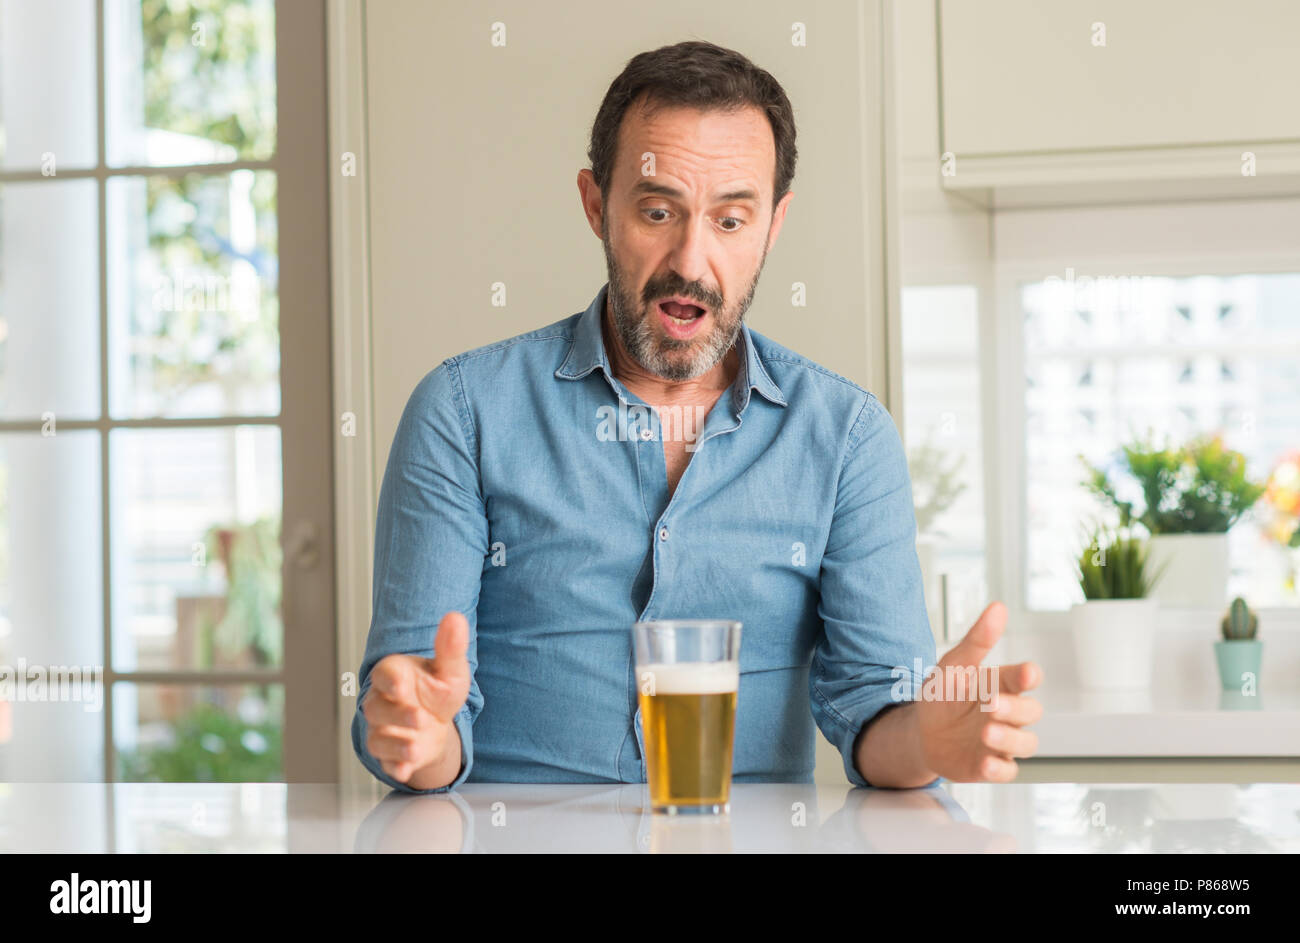 Middle age man drinking beer scared in shock with a surprise